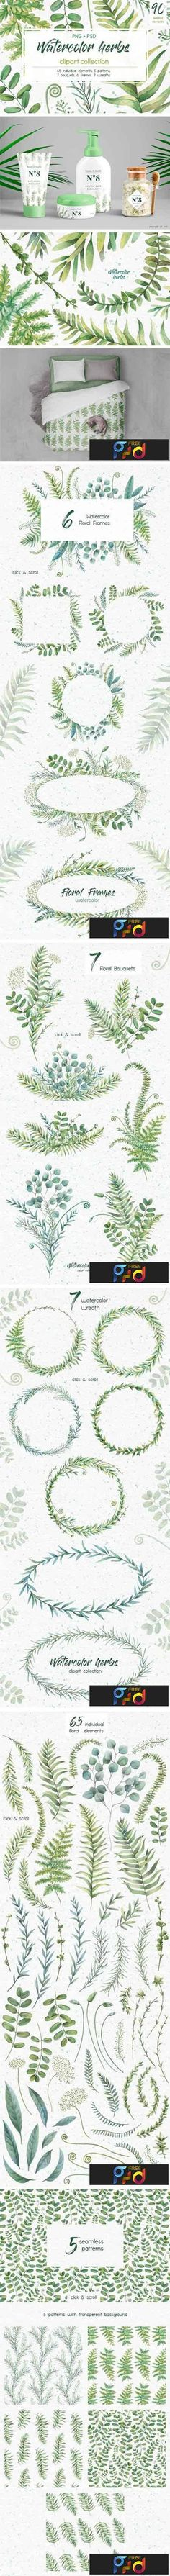 1706094 Watercolor Herbs Clipart Collection 1818264